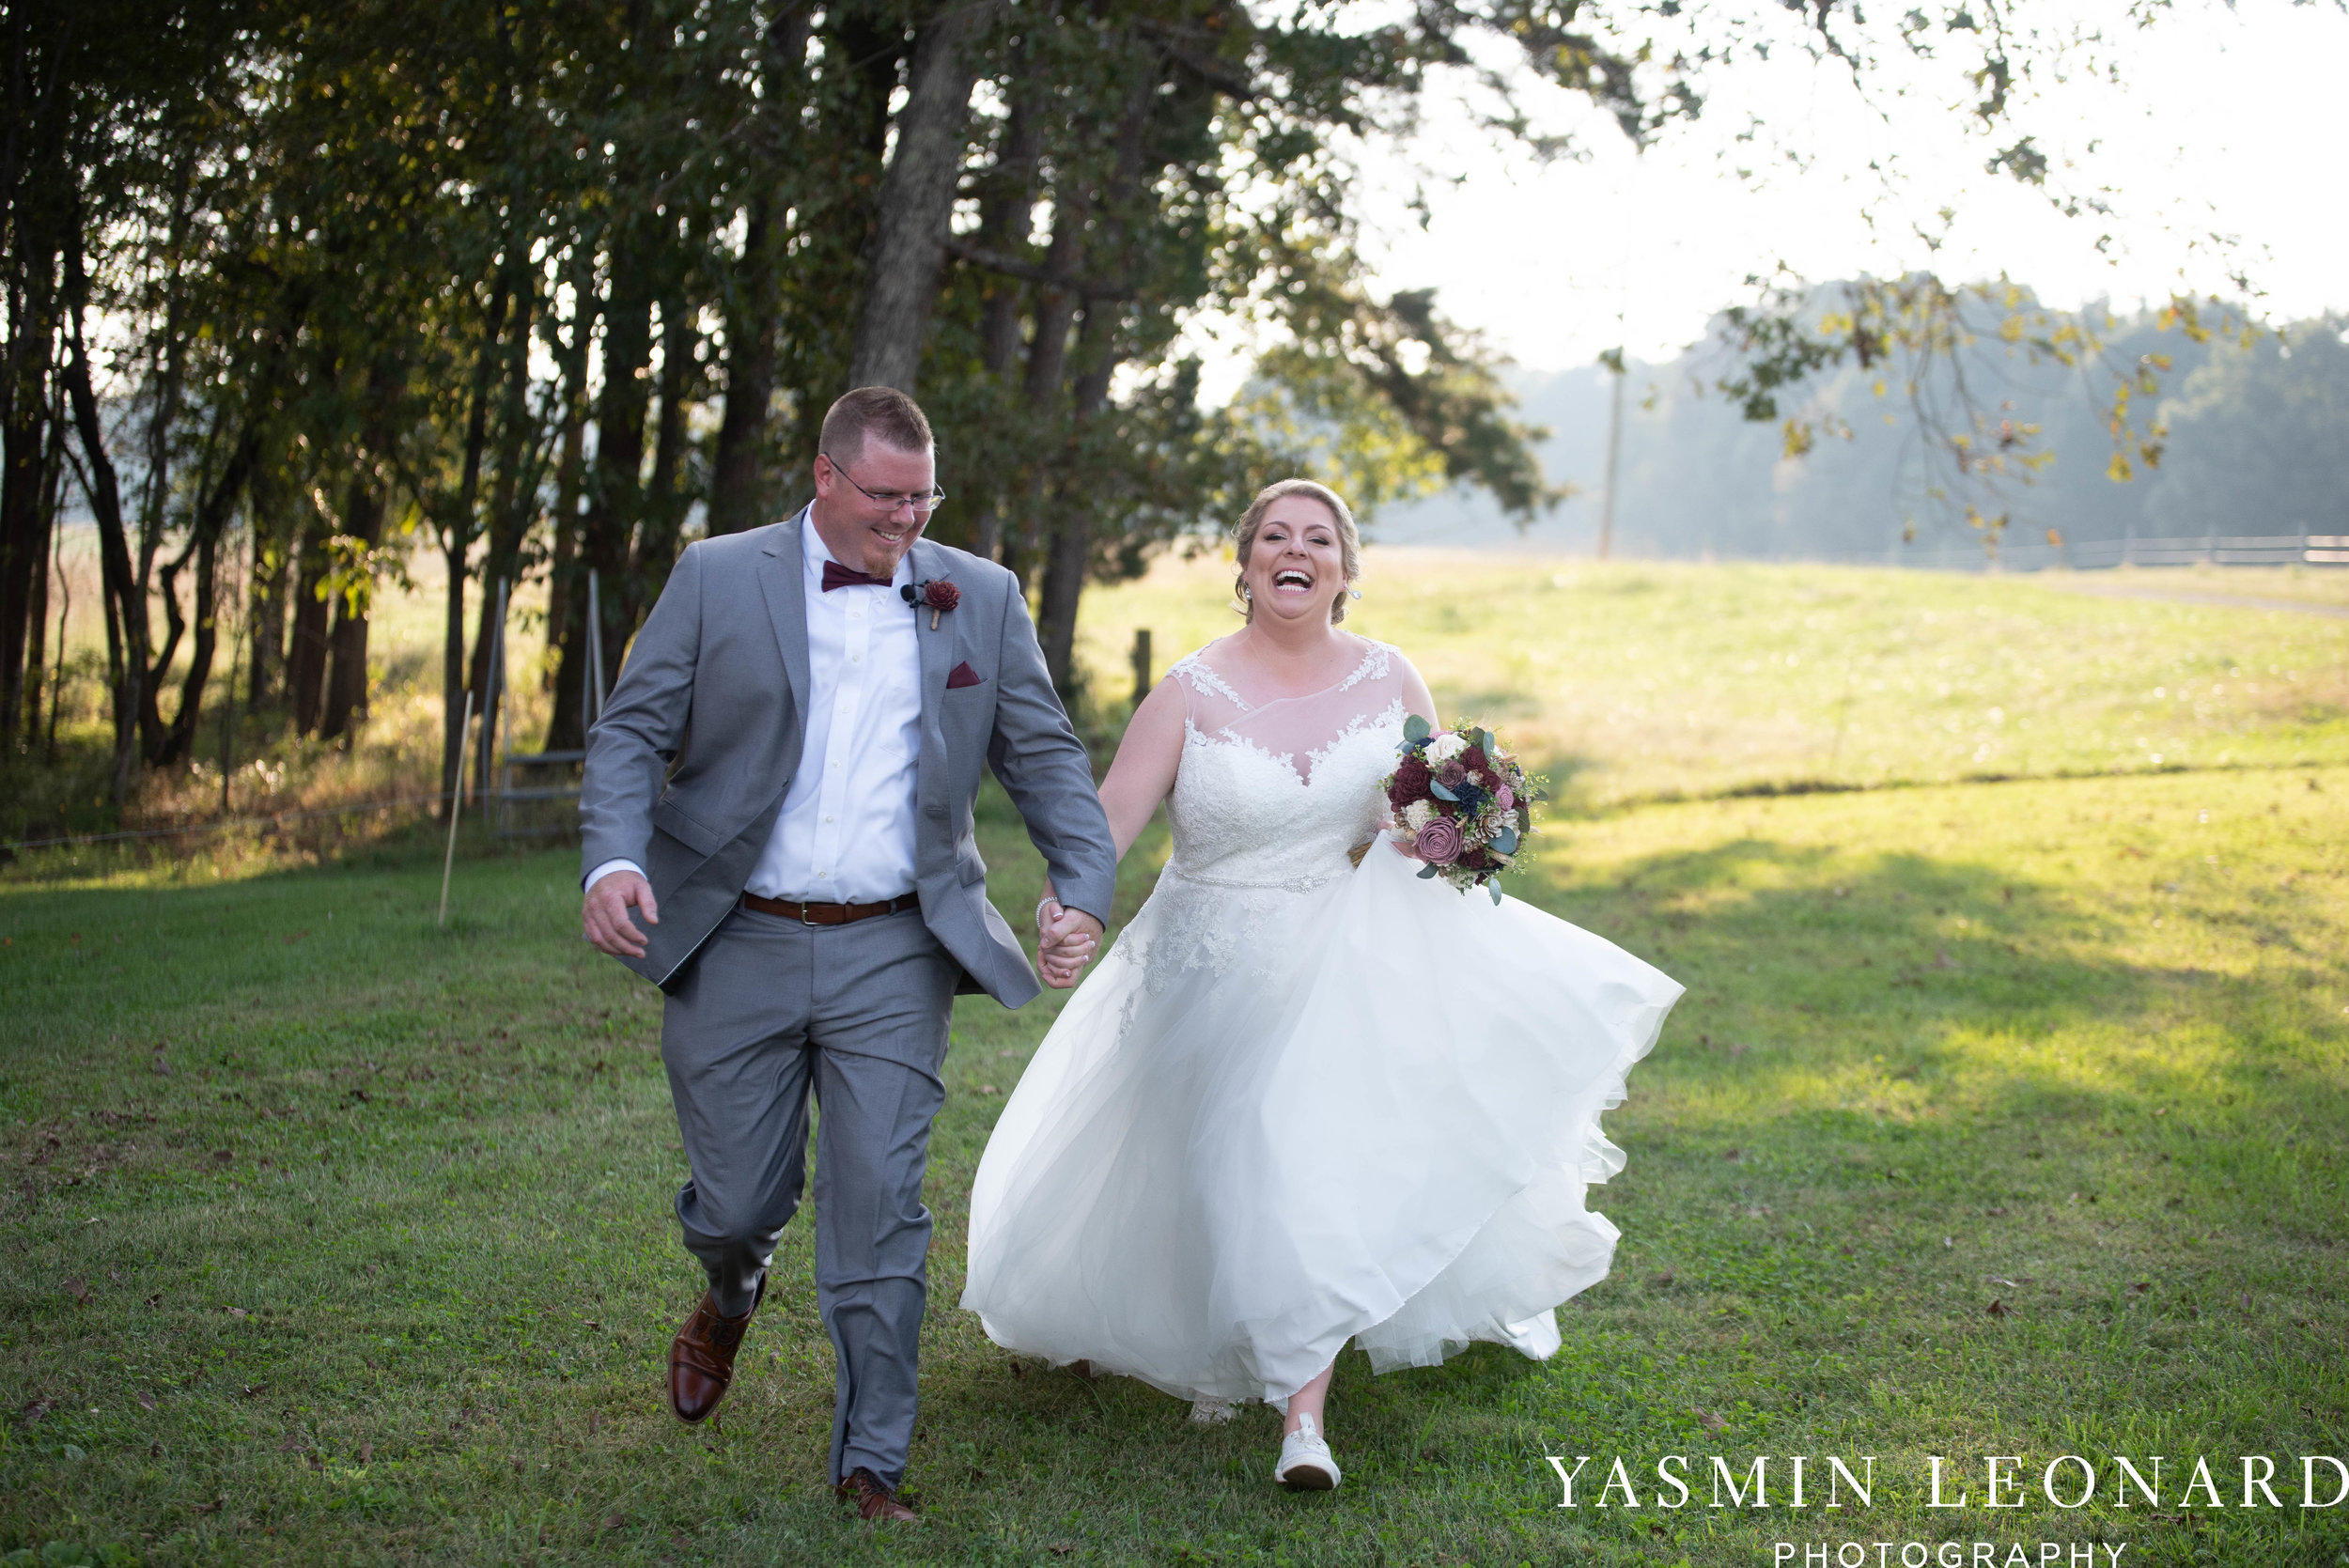 Danner Farms - NC Wedding Venues - NC Barns - Statesville NC - NC Wedding Photographer - High Point Wedding Photographer - Yasmin Leonard Photography-52.jpg